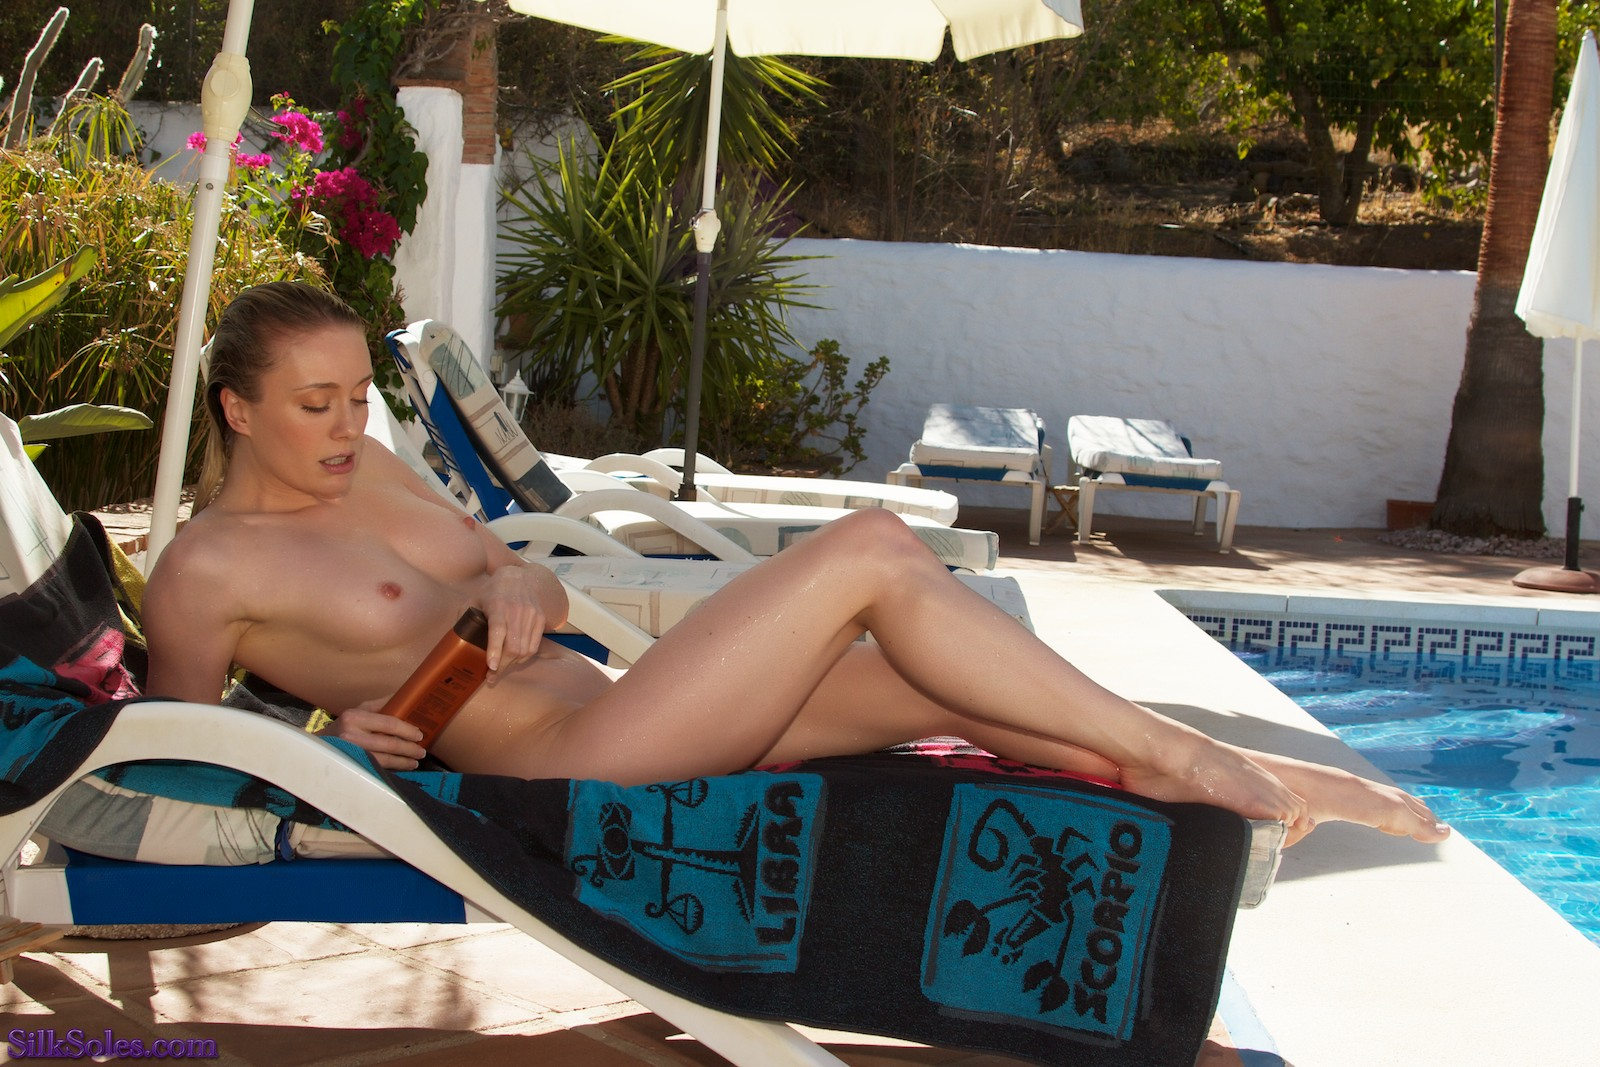 Katy Cee sunbathing in Spain. Obviously, her soles need sun-cream...